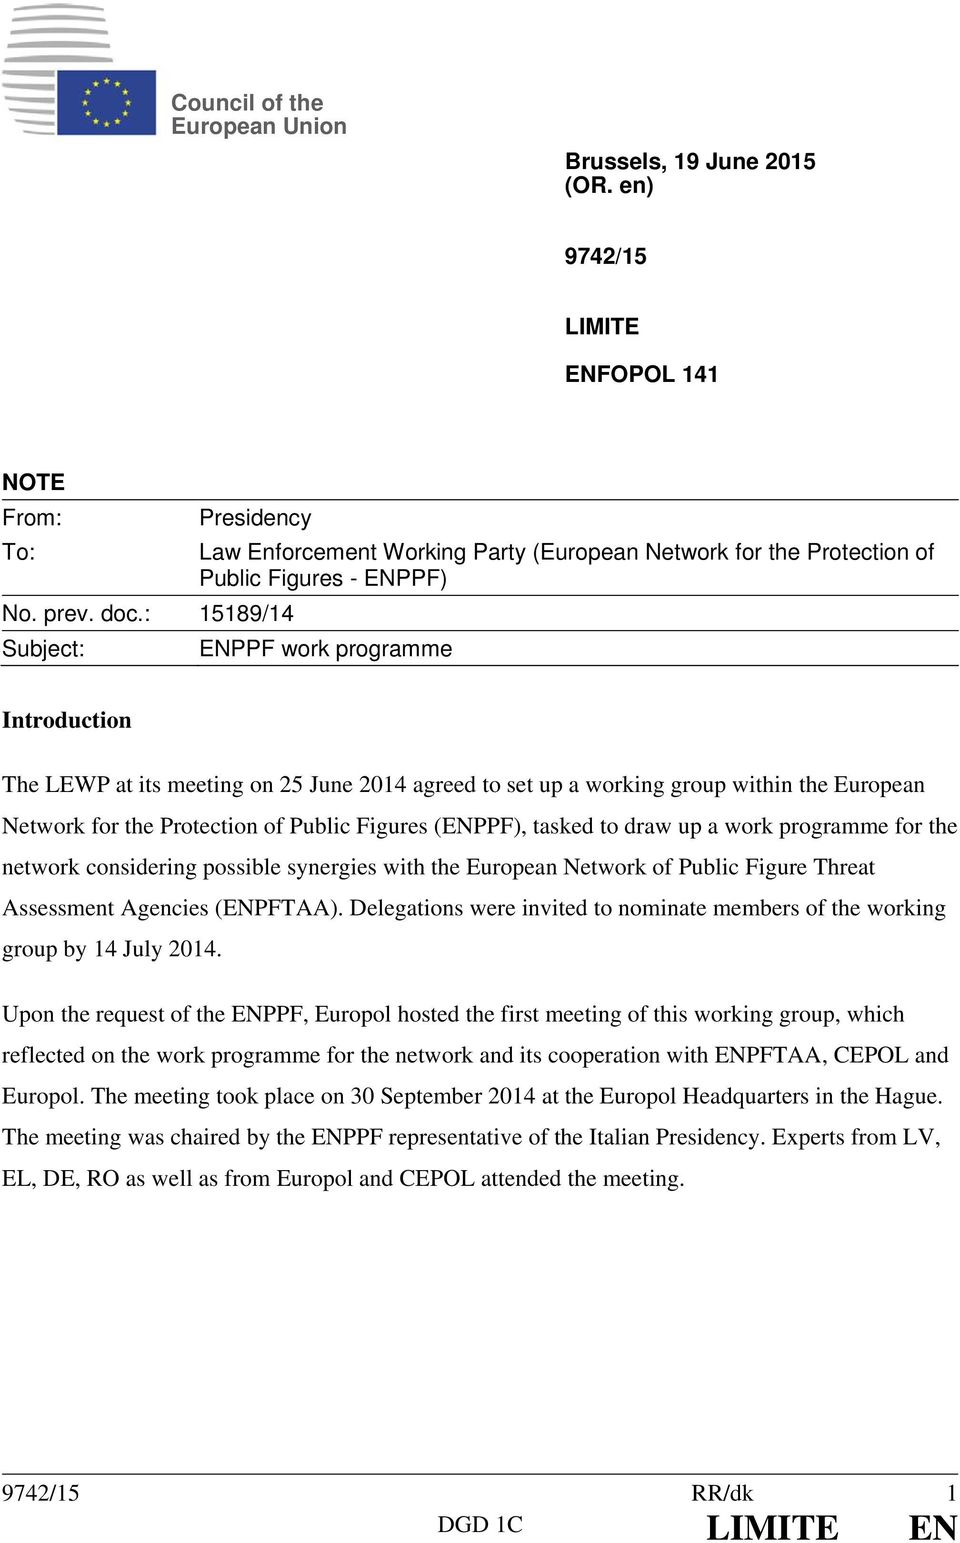 : 15189/14 Subject: ENPPF work programme Introduction The LEWP at its meeting on 25 June 2014 agreed to set up a working group within the European Network for the Protection of Public Figures